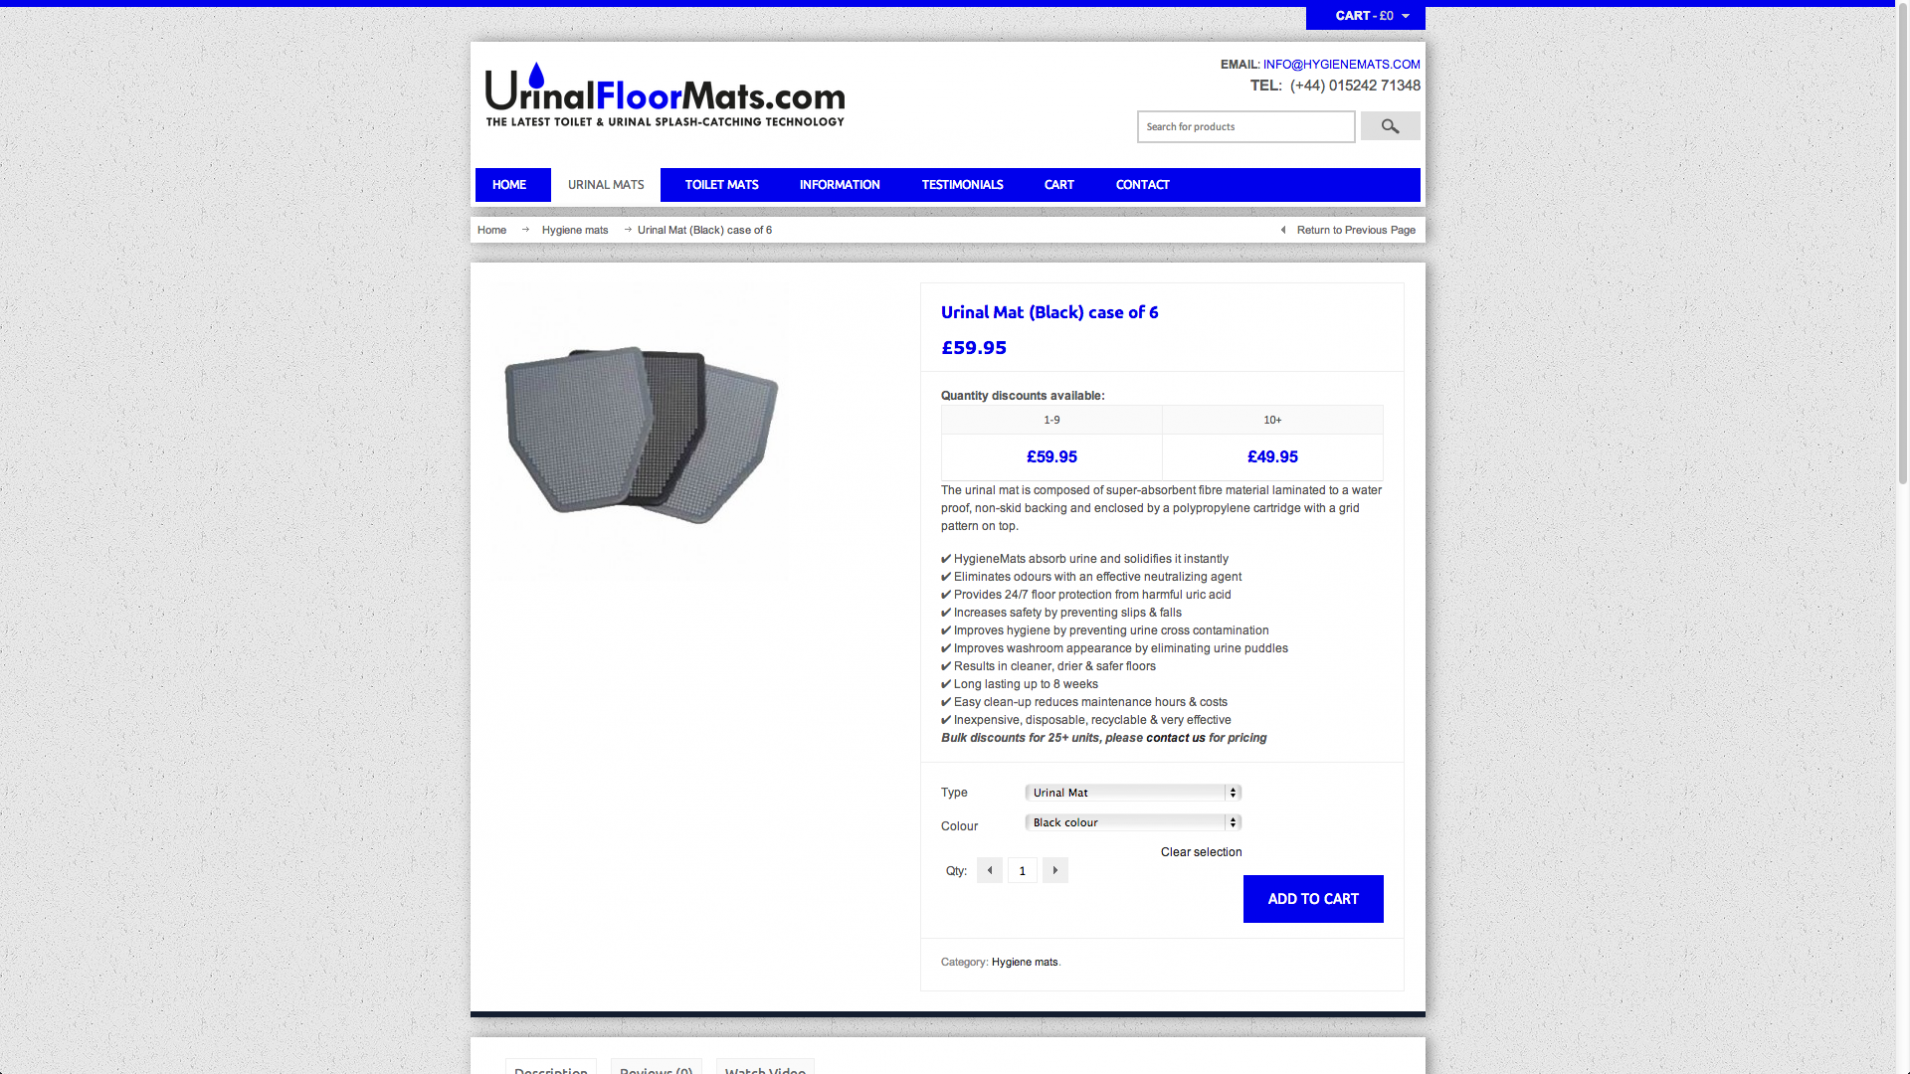 Screen Shot 2013 12 23 at 16.26.10 - Webdesign for cleaning equipment suppliers